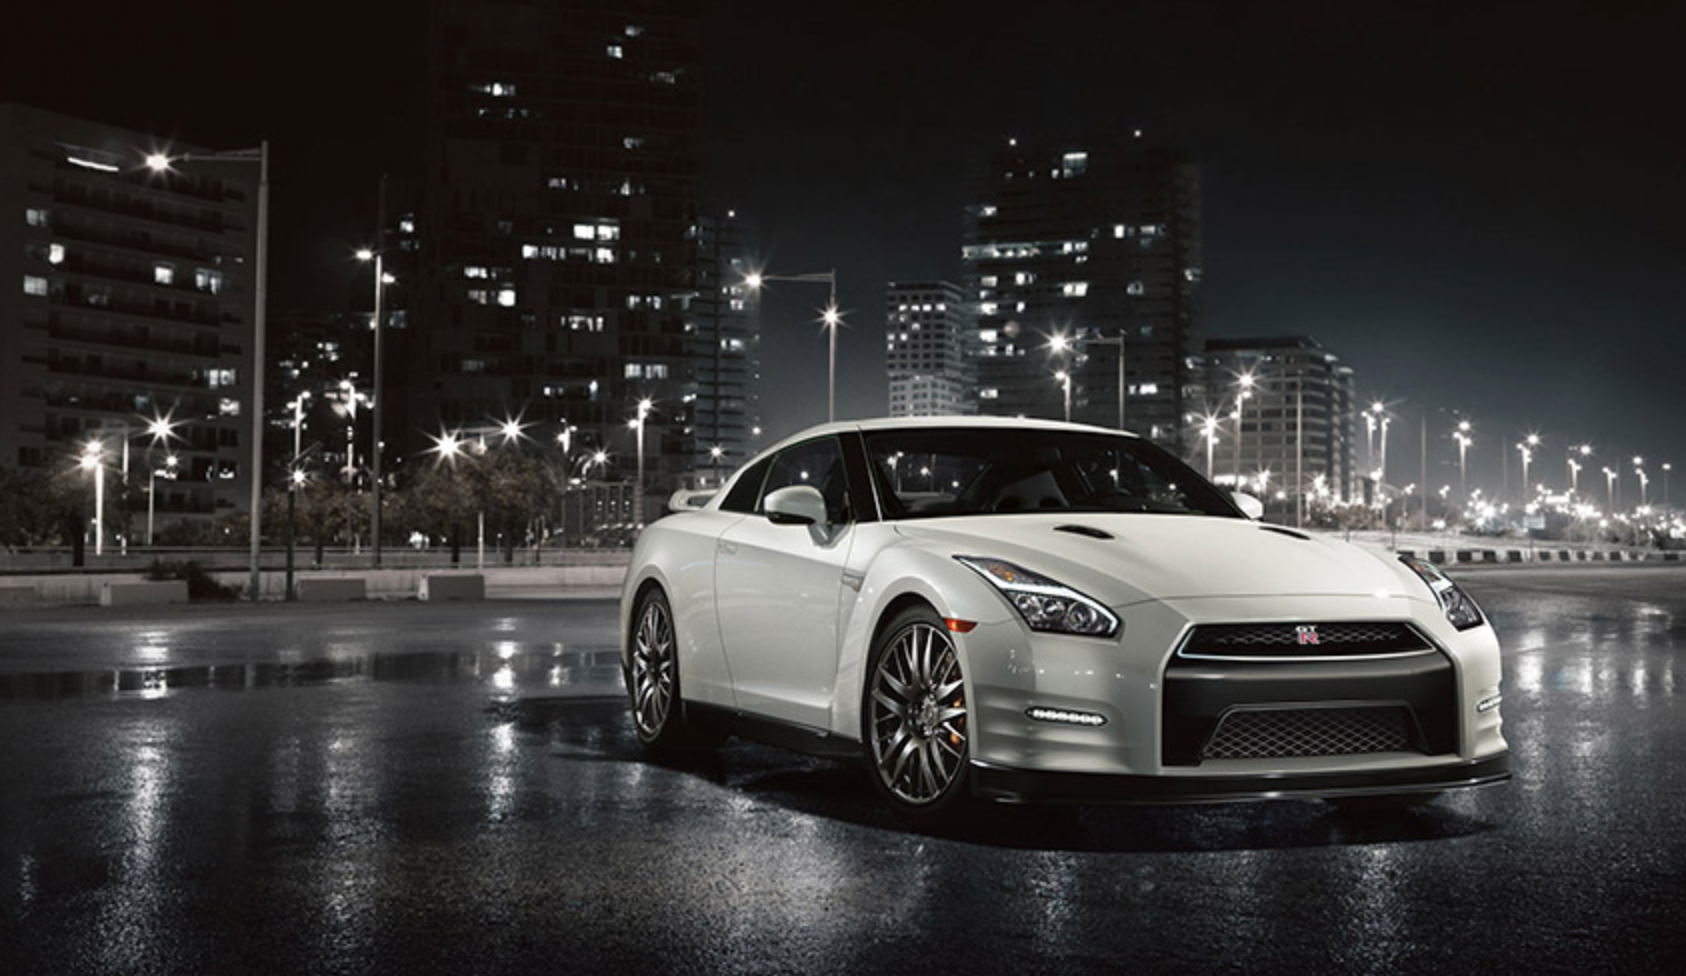 Picture Courtesy of http://www.nissanusa.com/sportscars/gt-r/colors-photos#_exterior